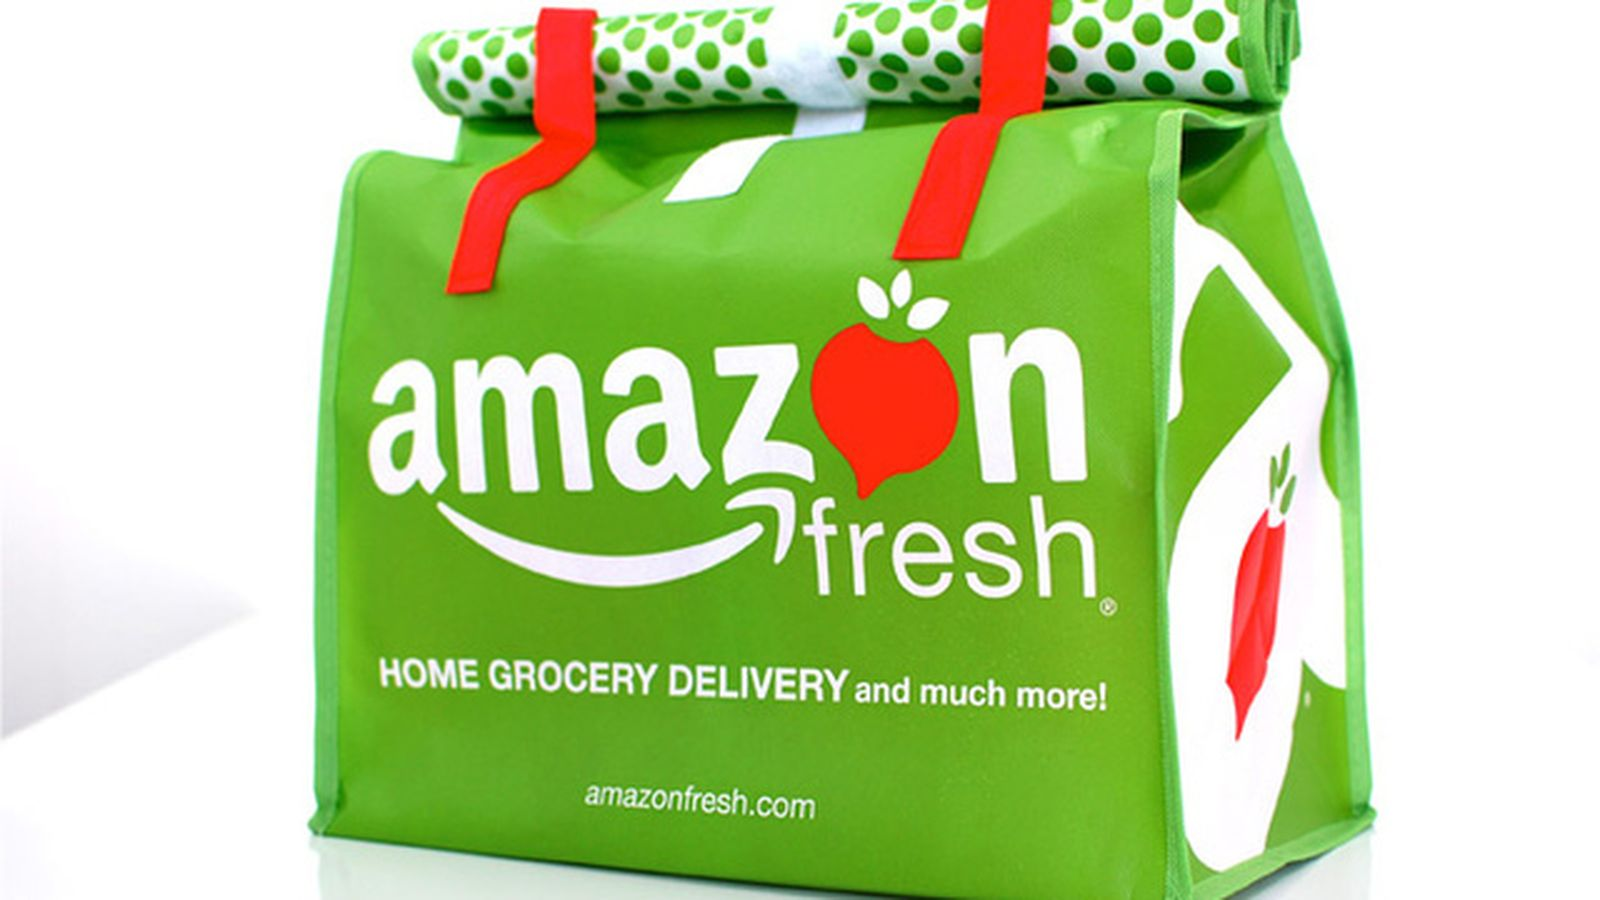 Amazon Fresh, a grocery delivery company that operates in parts of Seattle, Los Angeles, New York, and New Jersey, is a new service from Amazon.